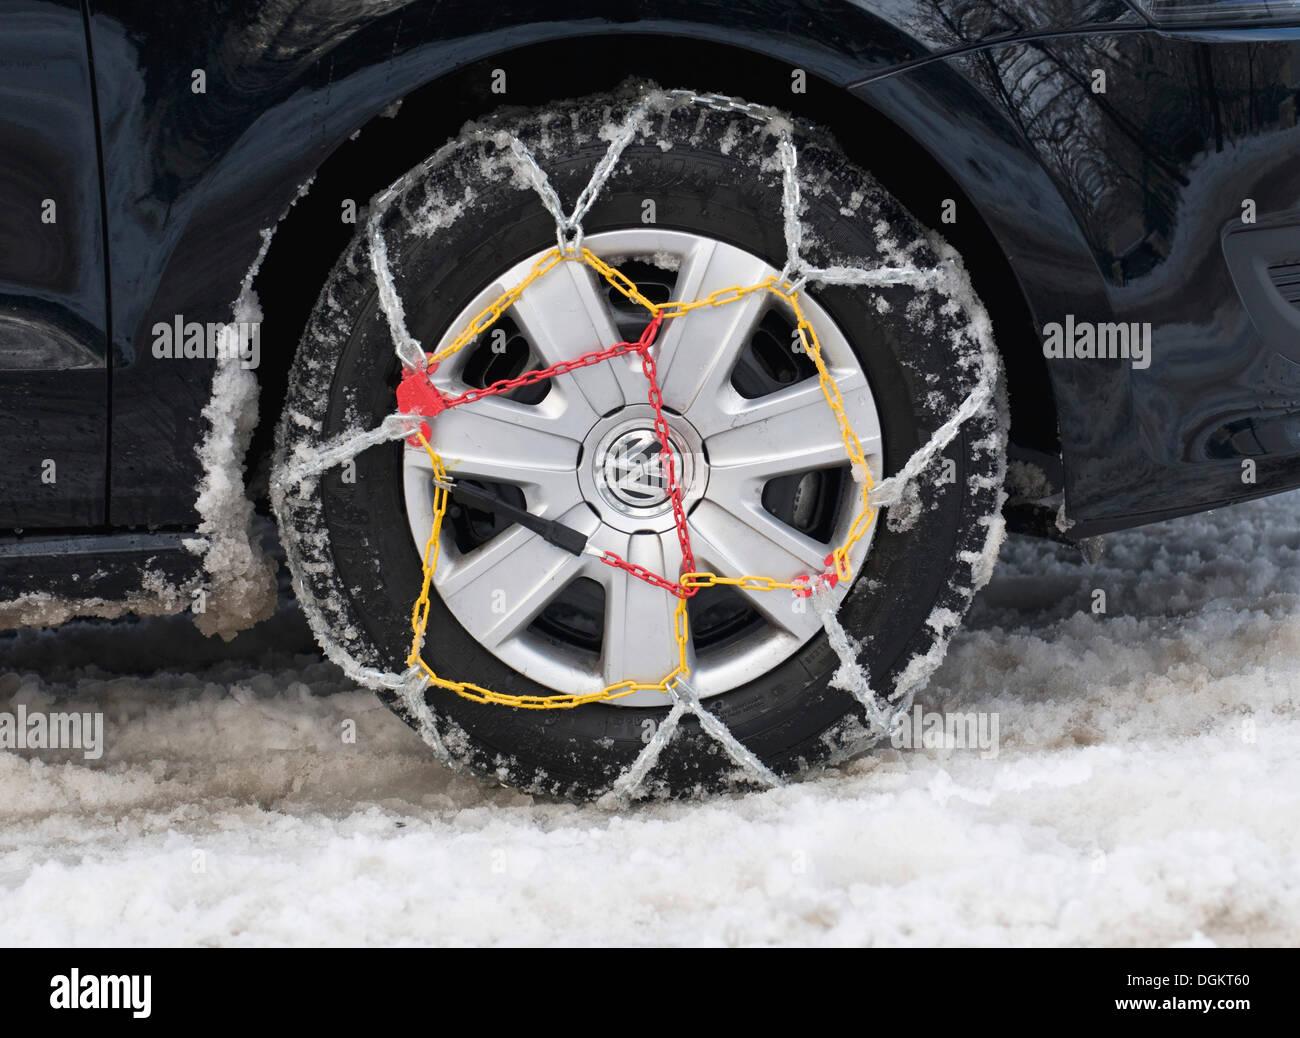 Car tyre with mounted snow chains in the snow - Stock Image